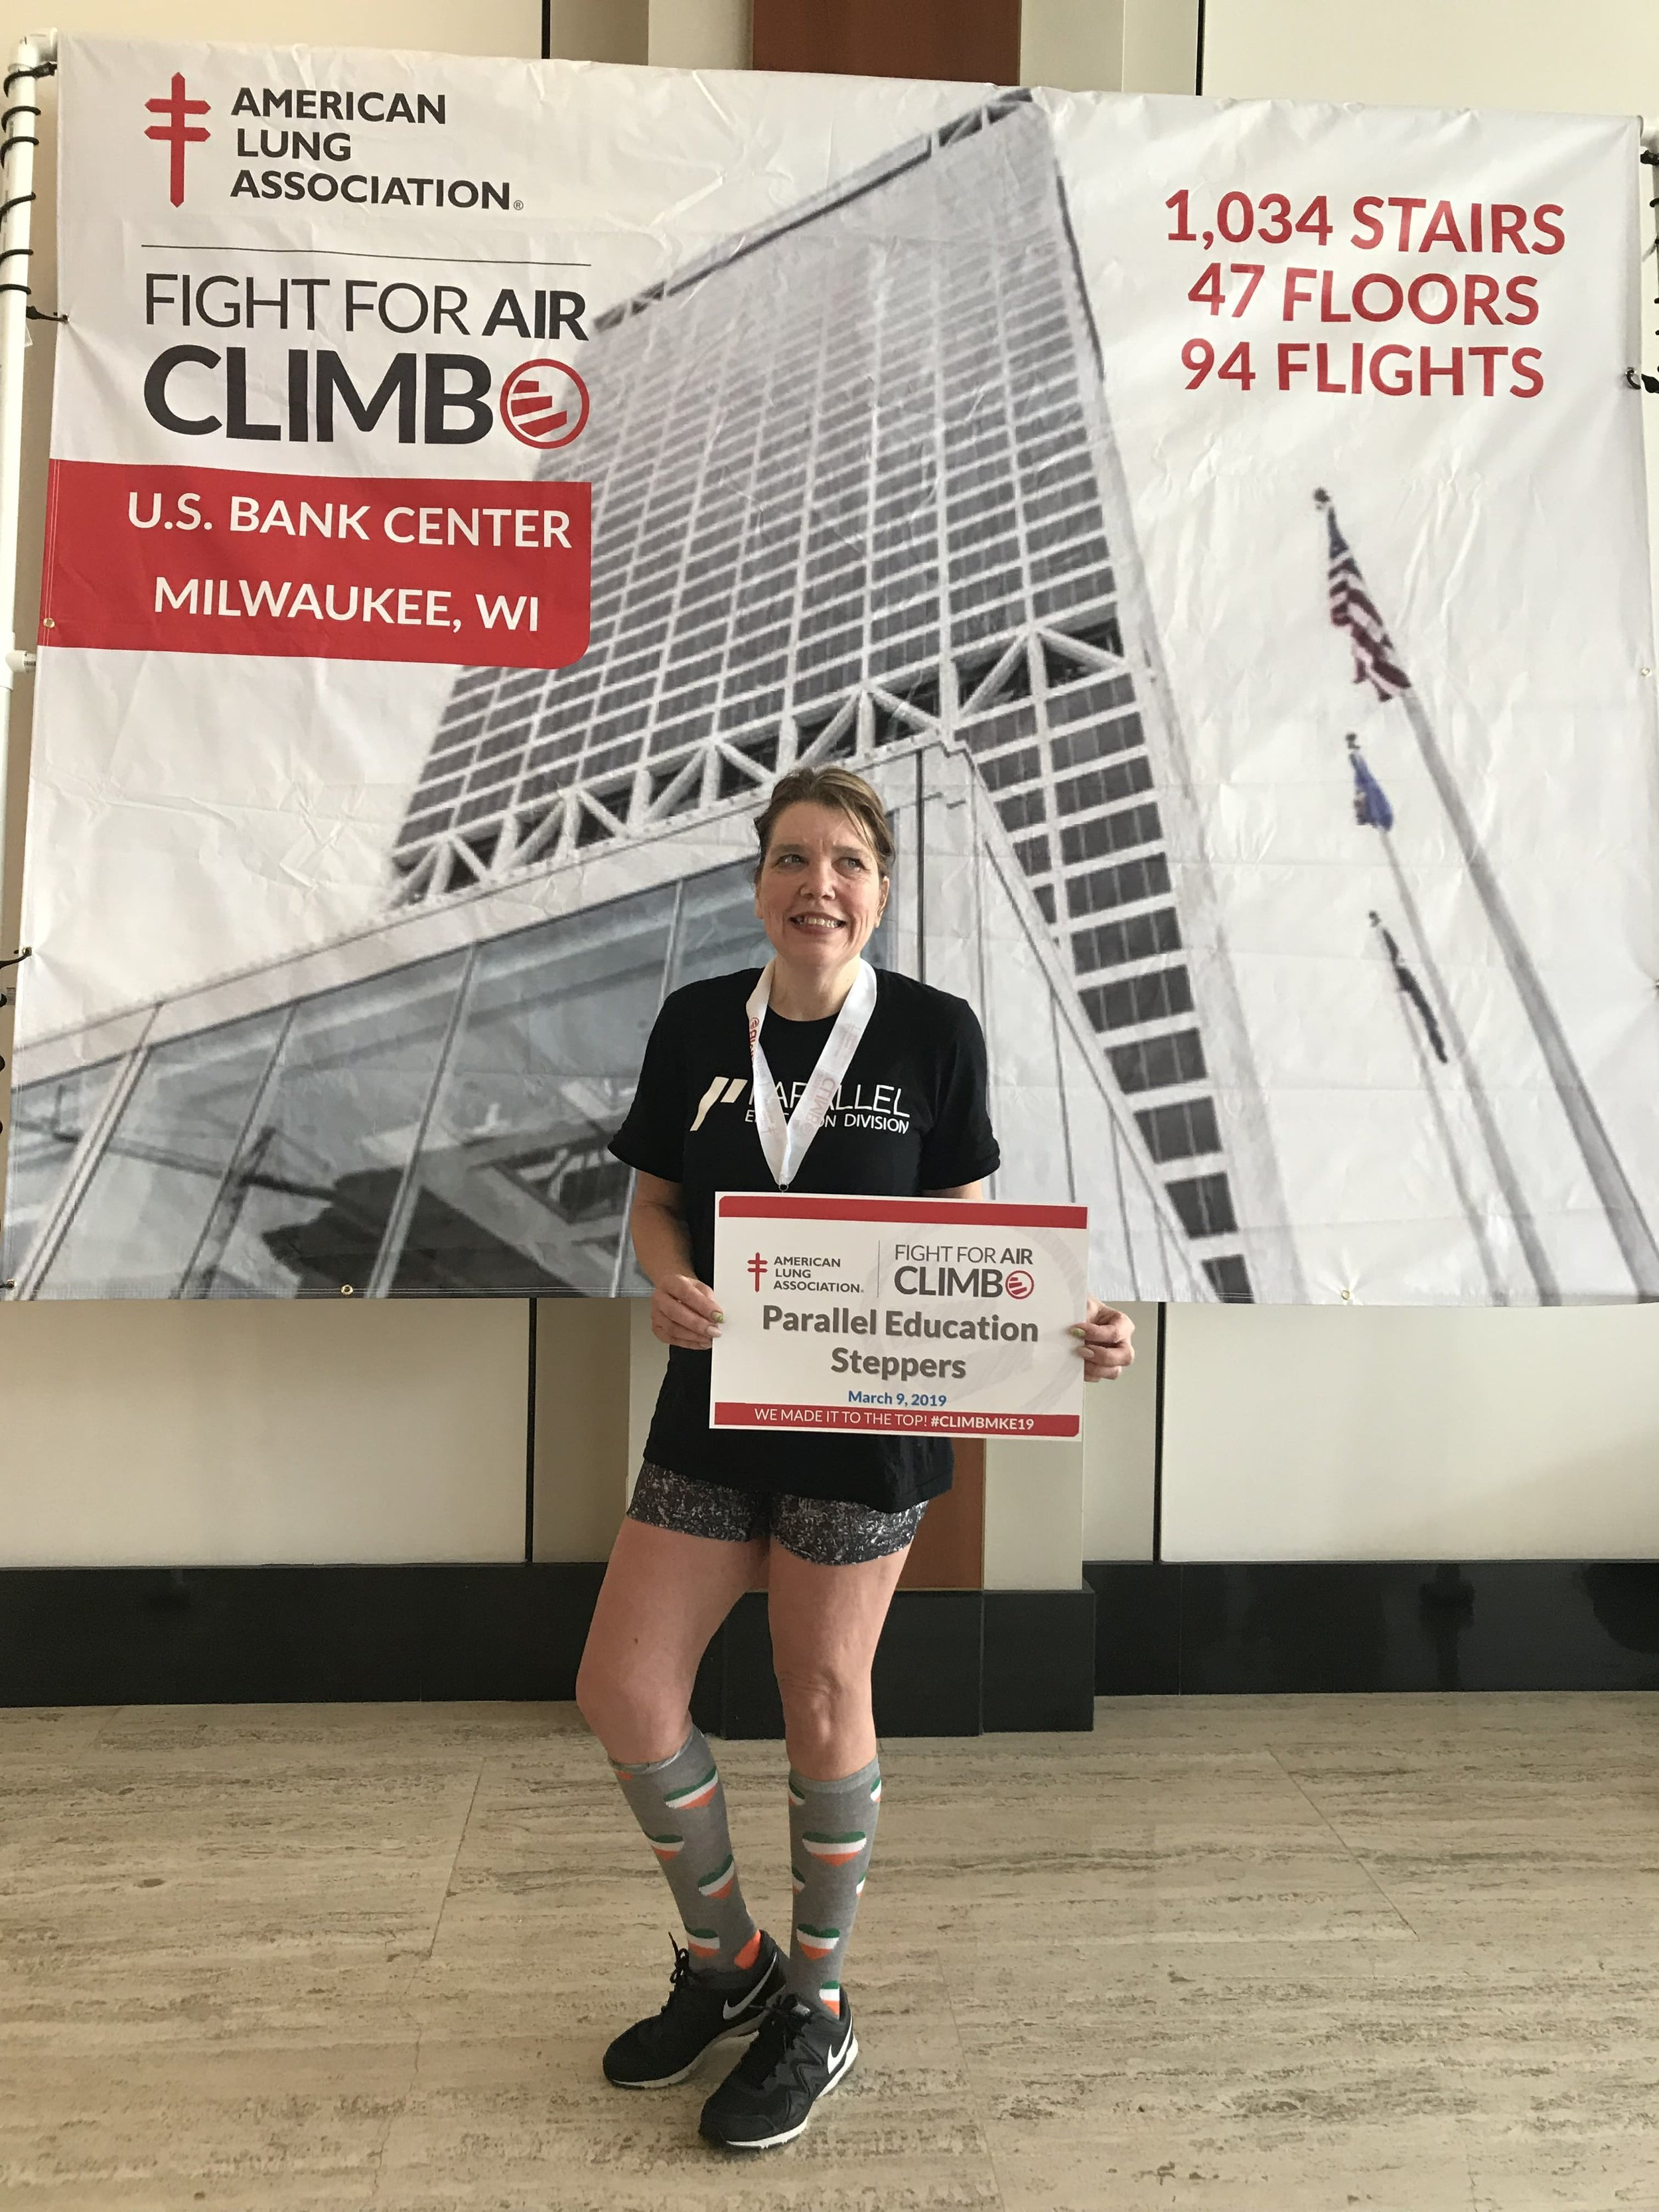 """Fight For Air Climb - We are proud to share that Kathy, a Parallel Education Division employee, participated in the American Lung Association Fight For Air Climb event! This event was held March 9, 2019 at the U.S. Bank Center in Milwaukee, WI. Kathy participated in the """"Power Hour Challenge"""" which challenged participants to climb 42 floors, multiple times, in a one hour time allotment. Kathy successfully completed 4 rounds! Parallel sponsored Kathy's team and donated to the cause.According to the American Lung Association: """"What is a Fight For Air Climb?One of the American Lung Association's signature fundraising events, Fight For Air Climbs are stair climbs held in prominent skyscrapers around the country. Climbers join friends, family, co-workers or even fly solo, climbing the stairs of the building to the top! Over the last several years, our Fight For Air Climbs have raised more than $53 million to support the mission of the American Lung Association.More than 26,000 participants from 44 Climb events across the country came together [in 2018] to raise more than $7.4 million. You can join the challenge and raise money to help provide life-saving lung health research, patient education and public policy efforts.The Fight For Air Climbs vary in the number of stairs to climb, but each event offers an opportunity for teams and individuals to challenge themselves. And every step you take moves us forward in our fight for healthy lungs and clean air.Together we can fight lung disease successfully!""""Interested? Get involved by visiting https://www.lung.org/get-involved/events/fight-for-air-climb"""